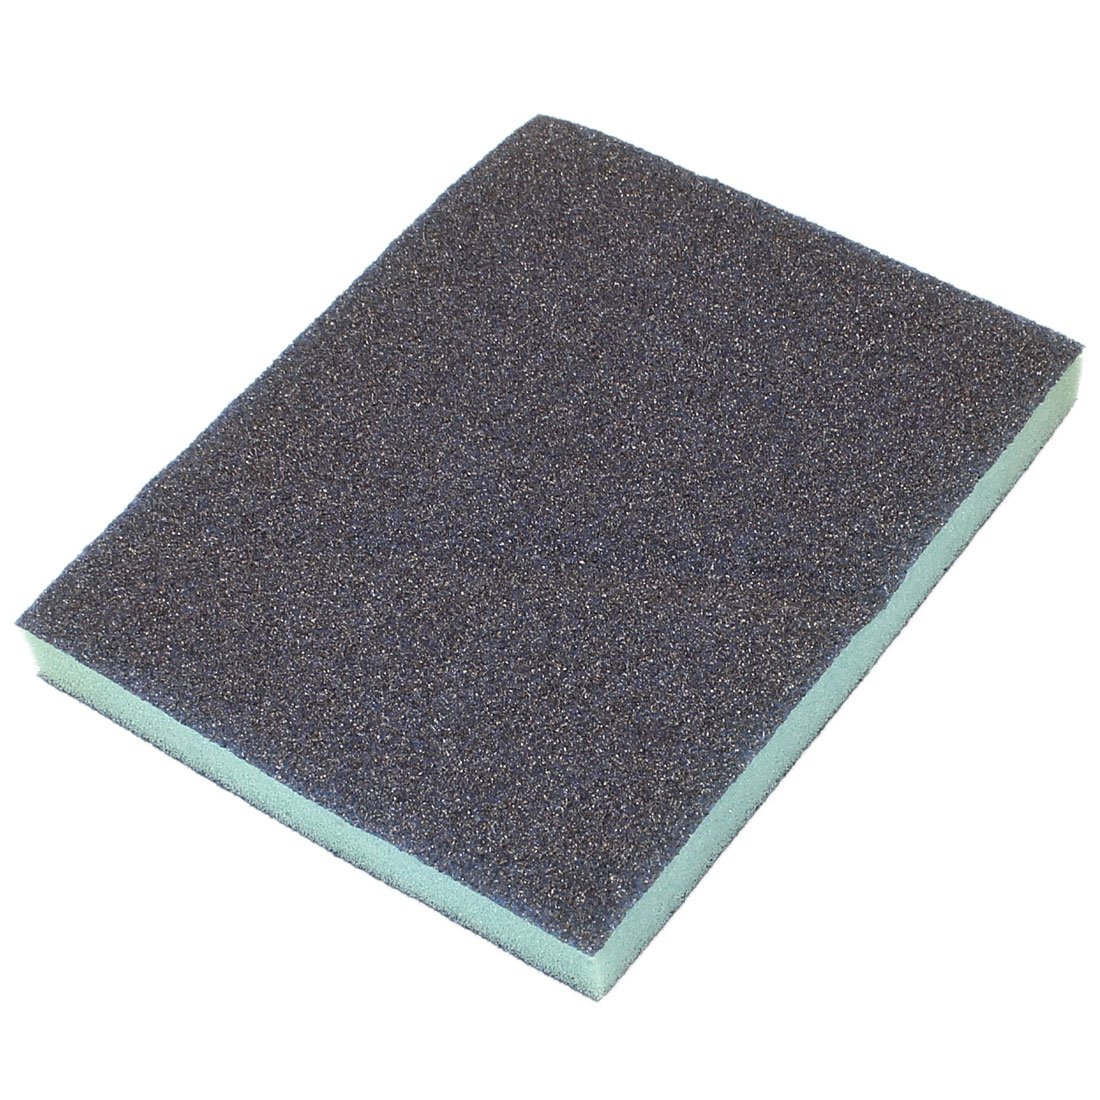 Rectangle Rough Grinding Sanding Sponge Block Gray 120mm x 98mm x 13mm Sourcingmap a14061000ux0730